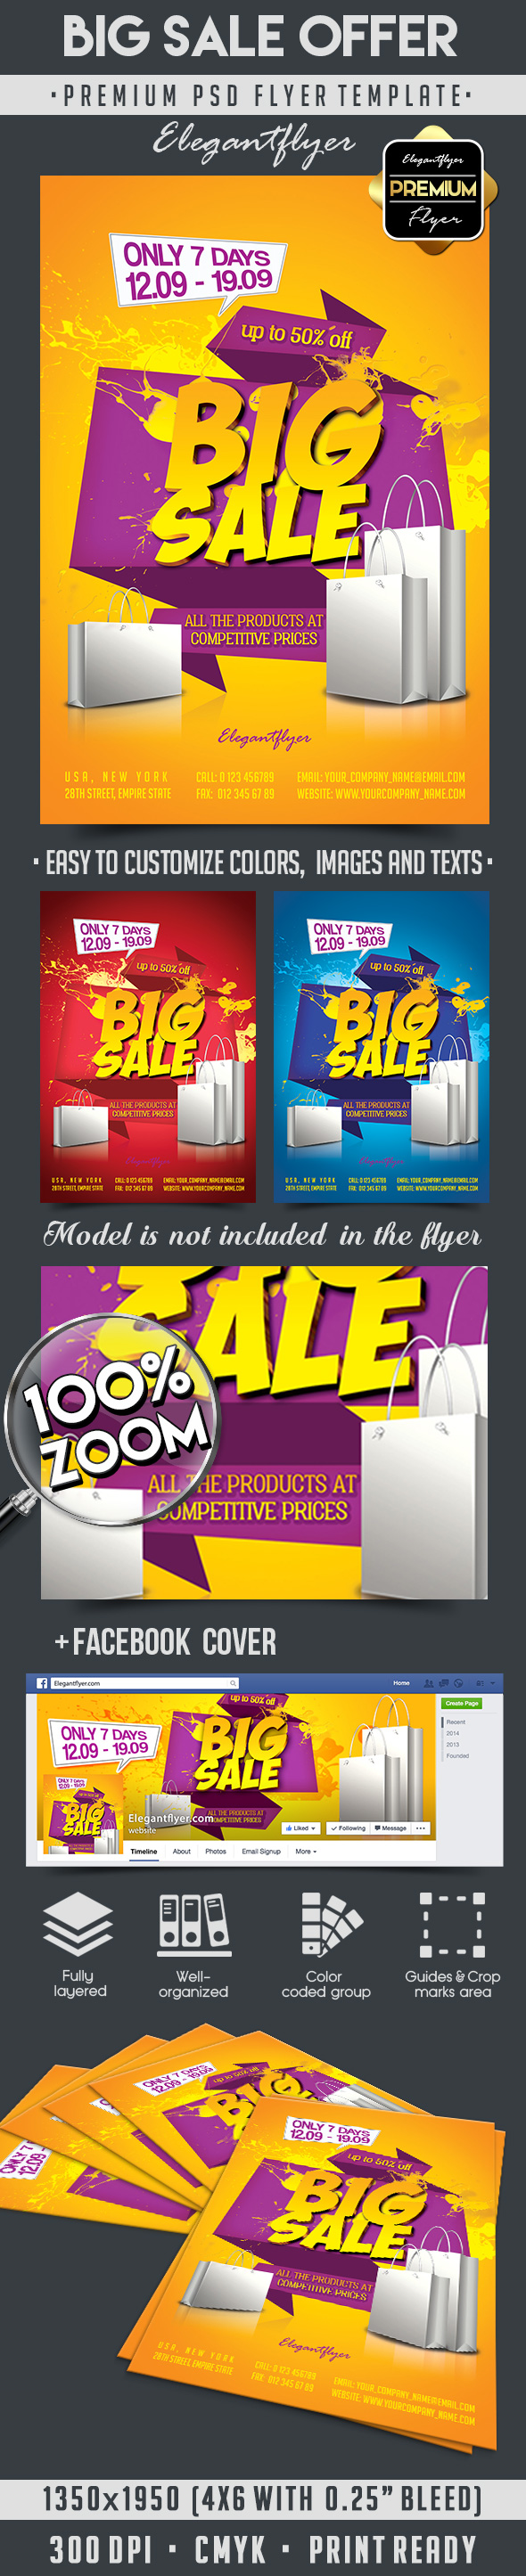 Big Sale Offer – Flyer PSD Template + Facebook Cover